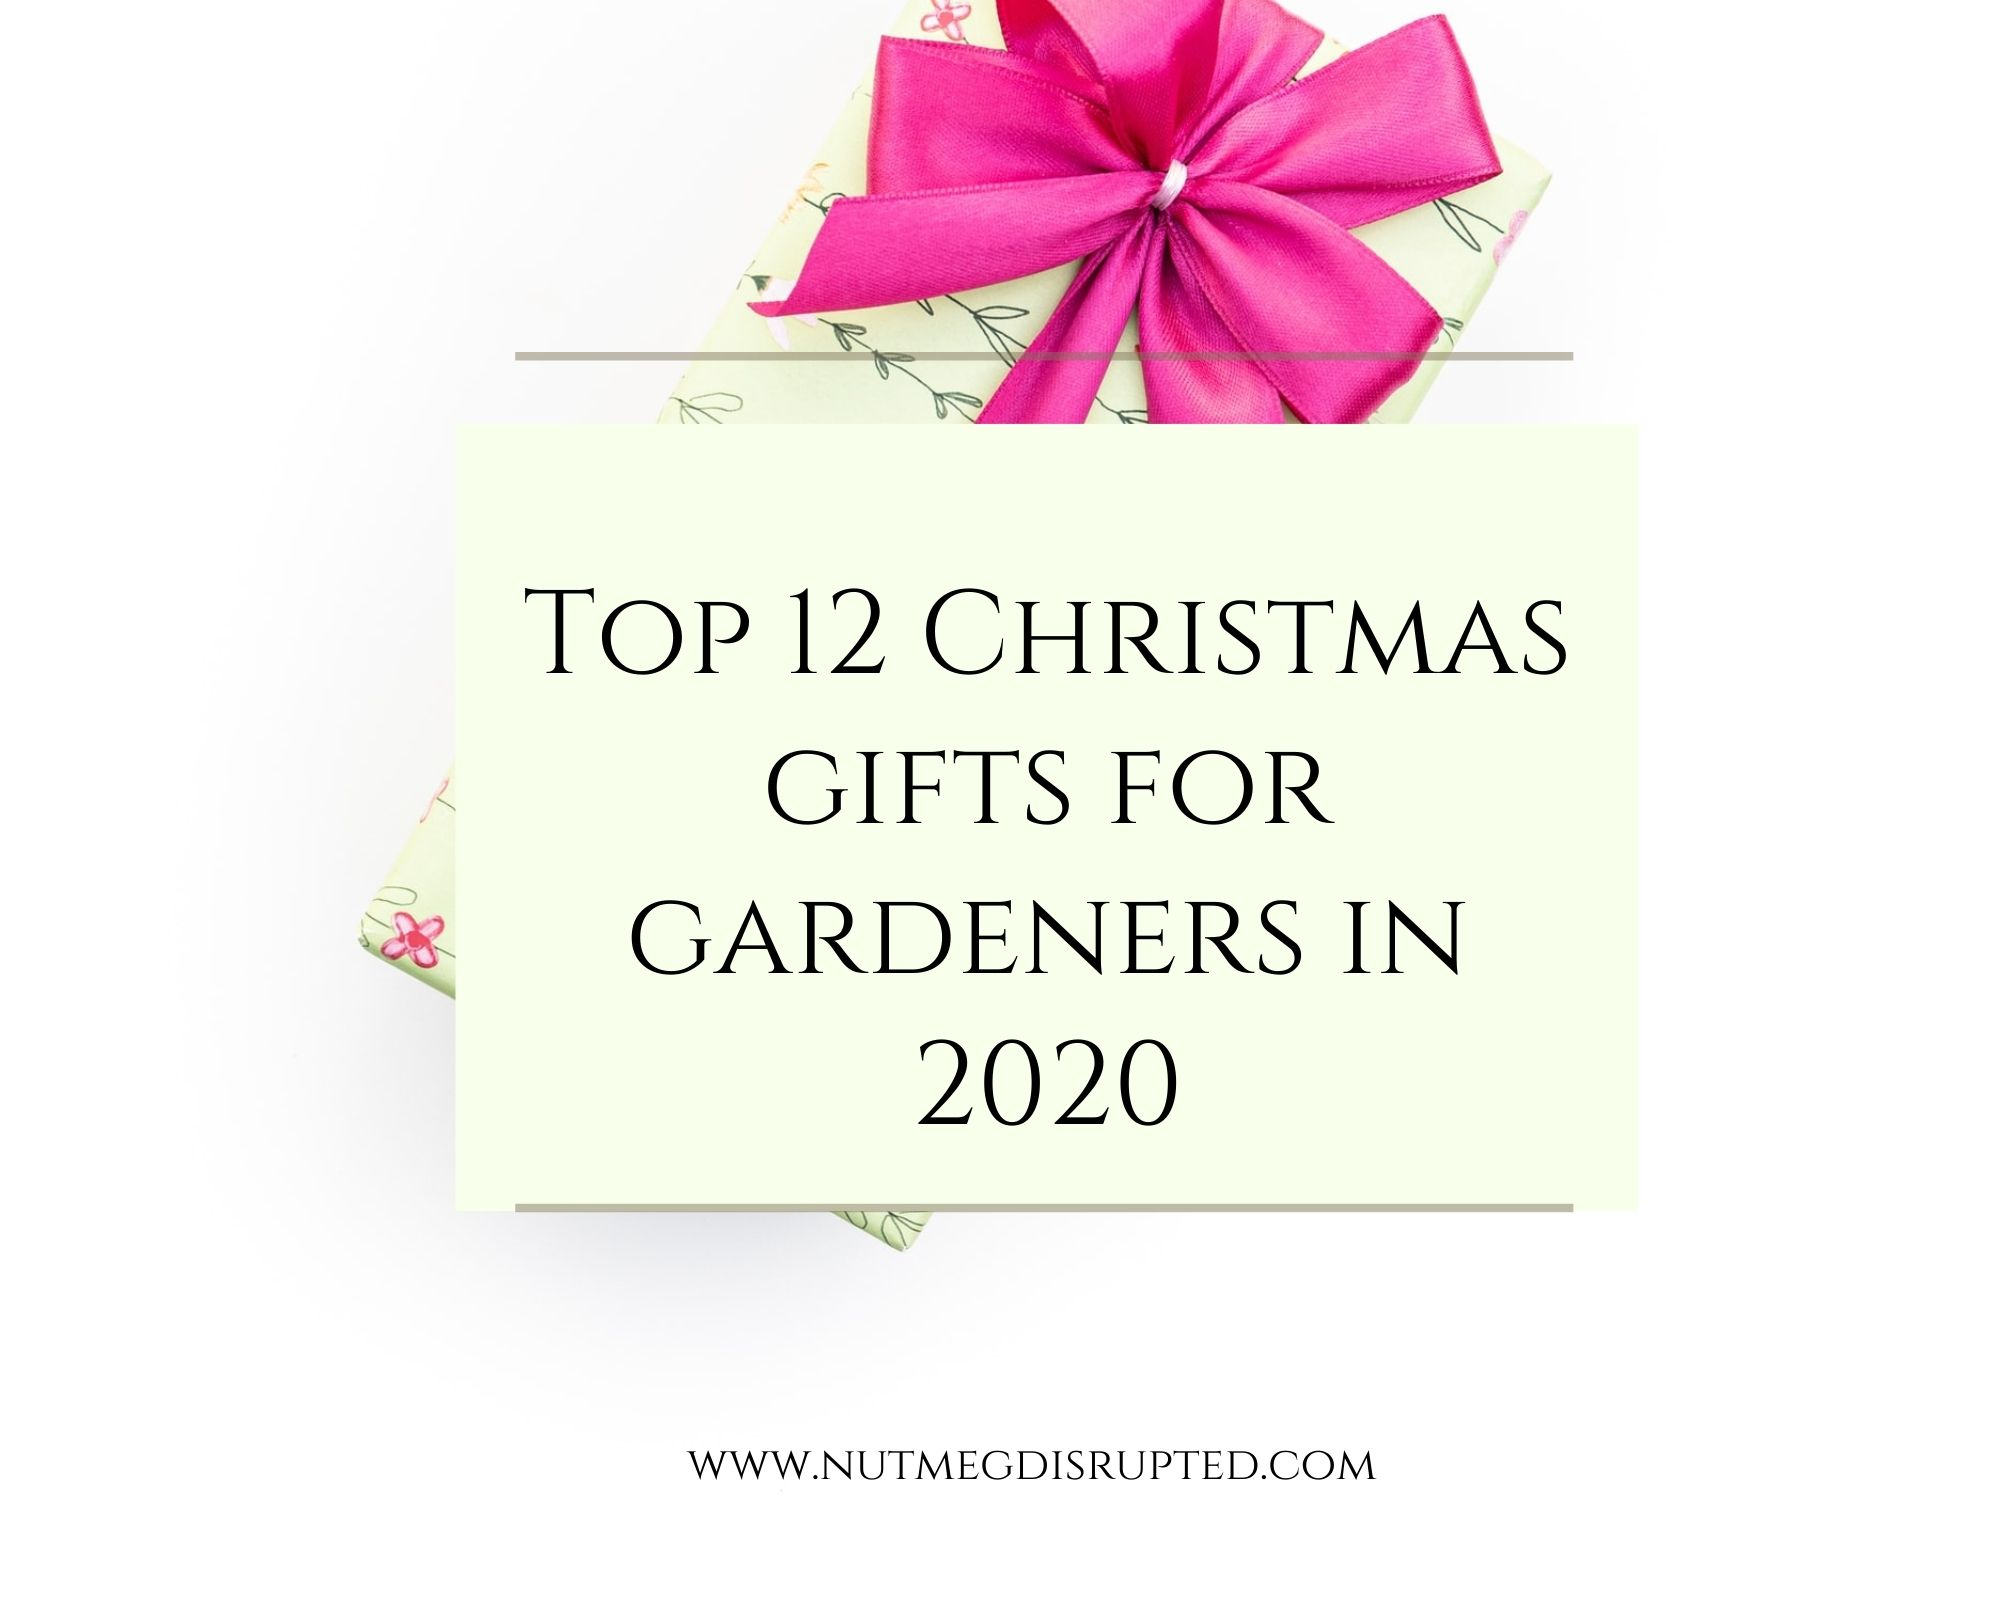 Top 12 Christmas Gifts for Gardeners in 2020